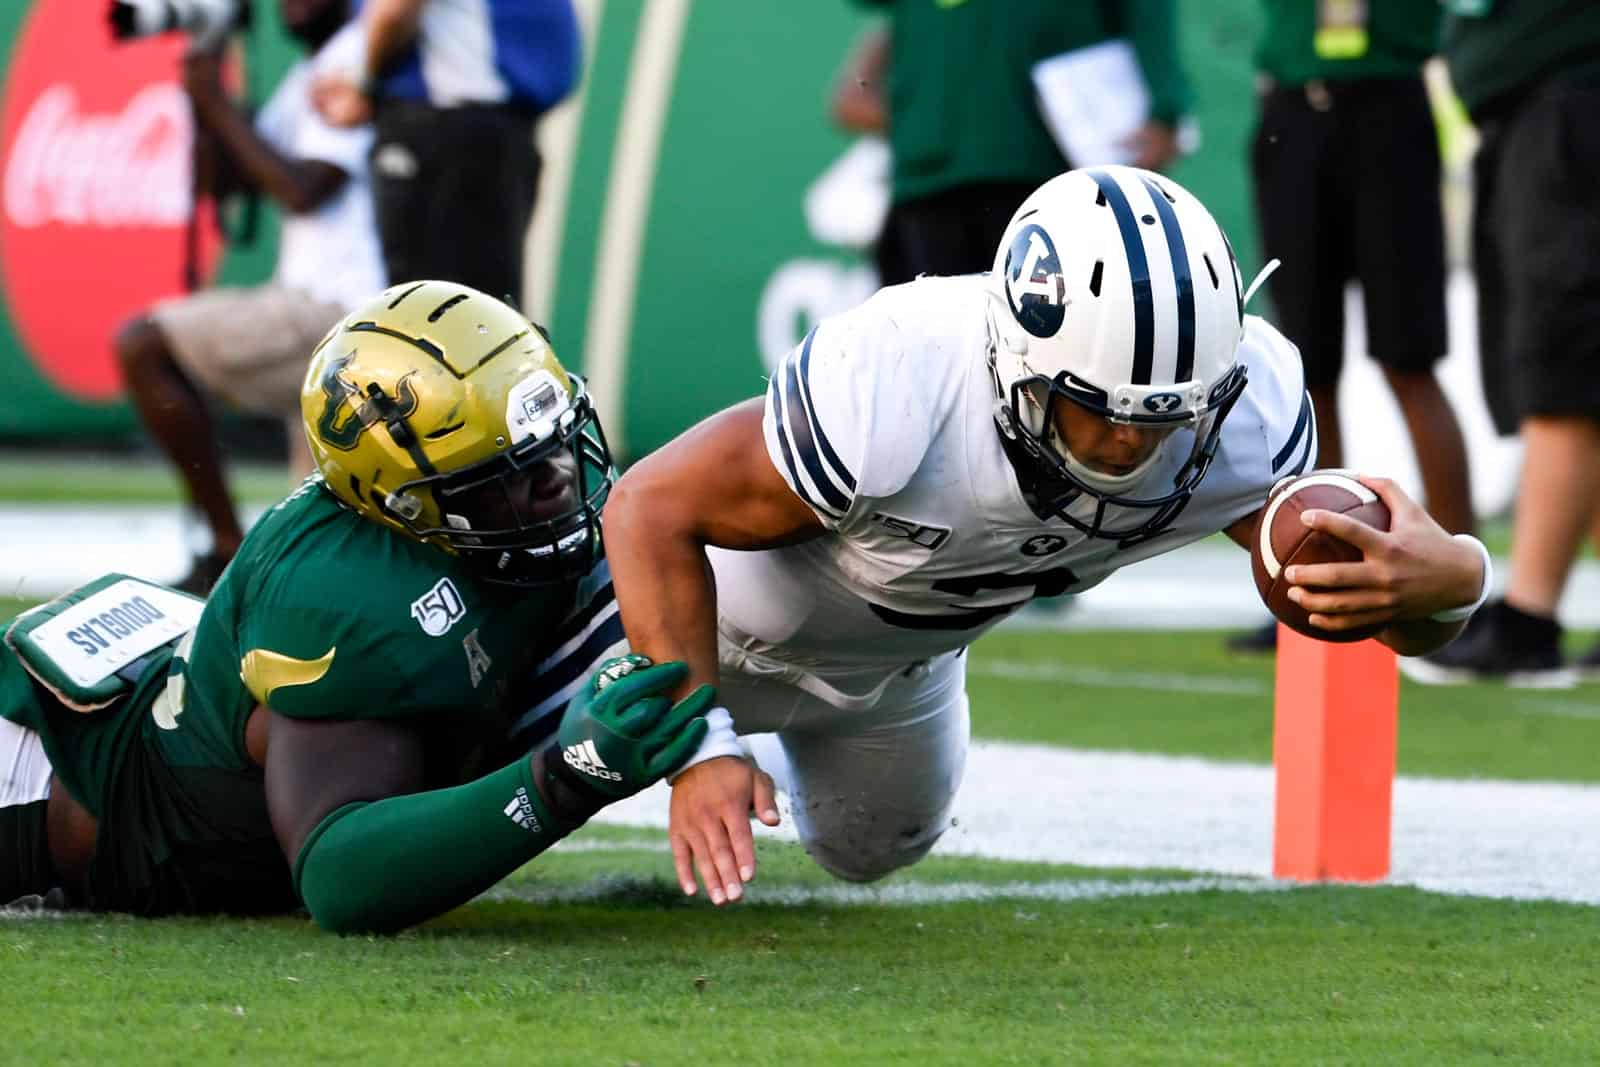 Wake Tech 2022 2023 Calendar.Usf Byu Schedule Home And Home Football Series For 2022 2023